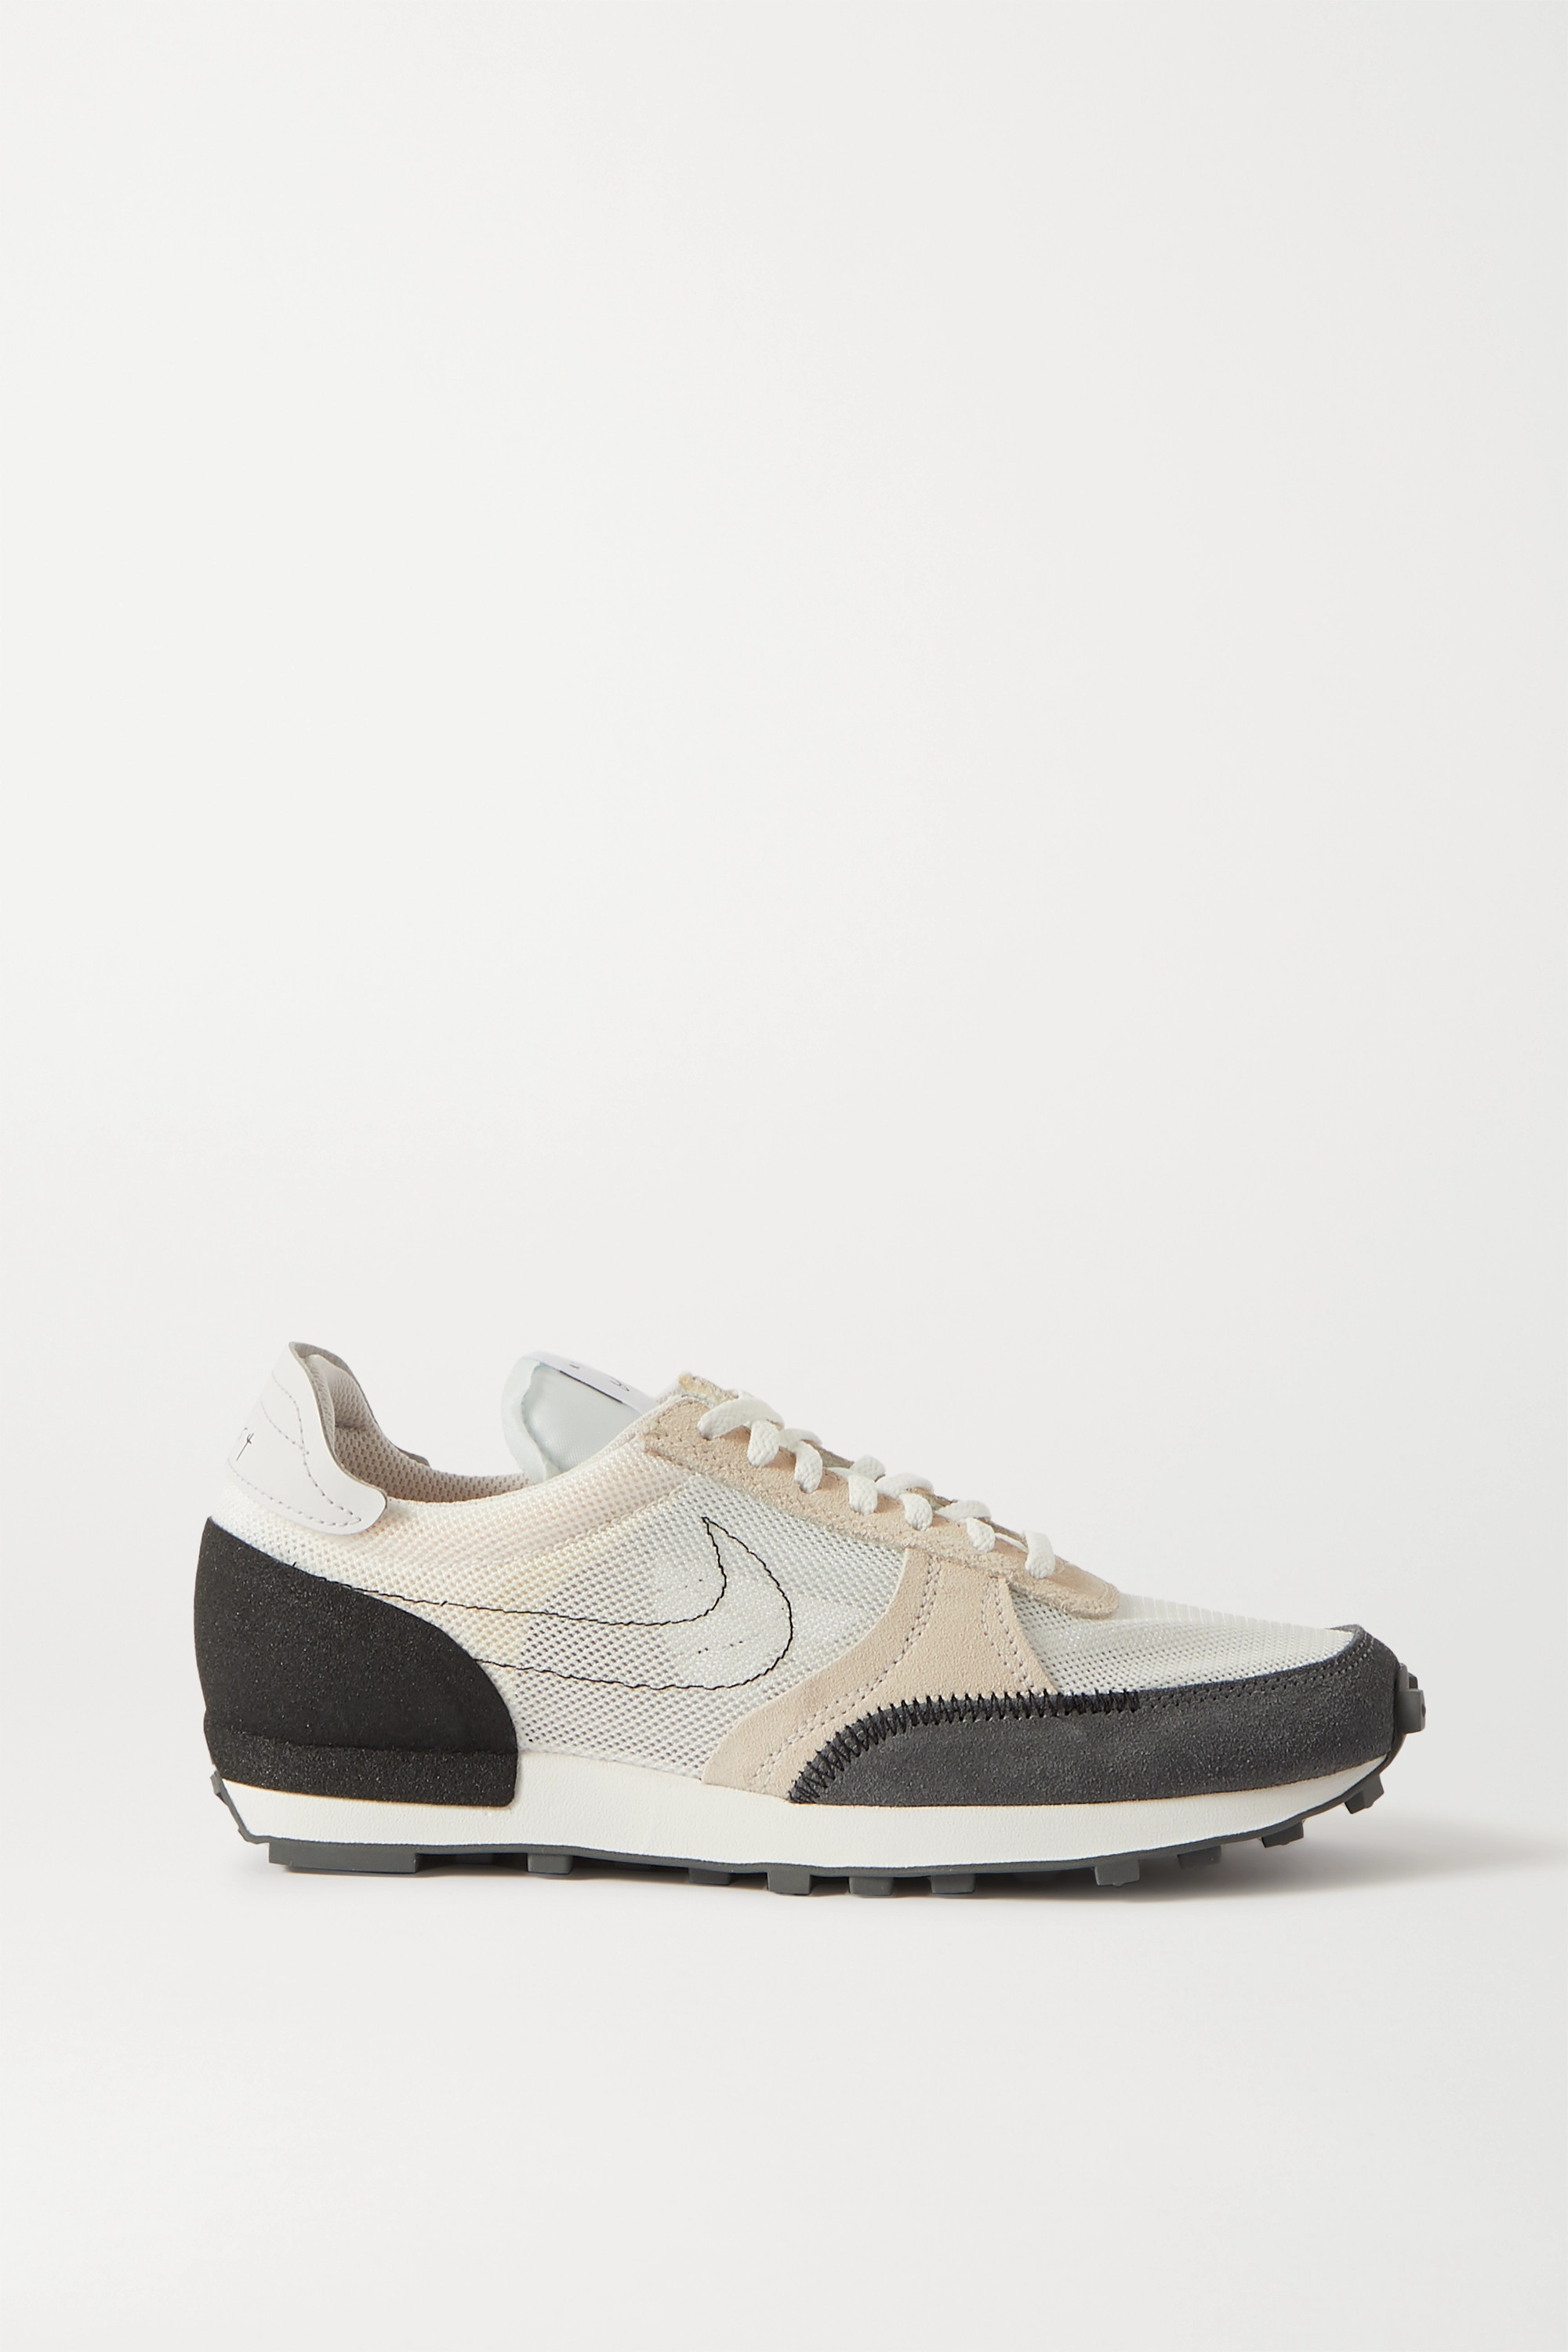 Nike Daybreak Type leather-trimmed embroidered mesh and suede sneakers